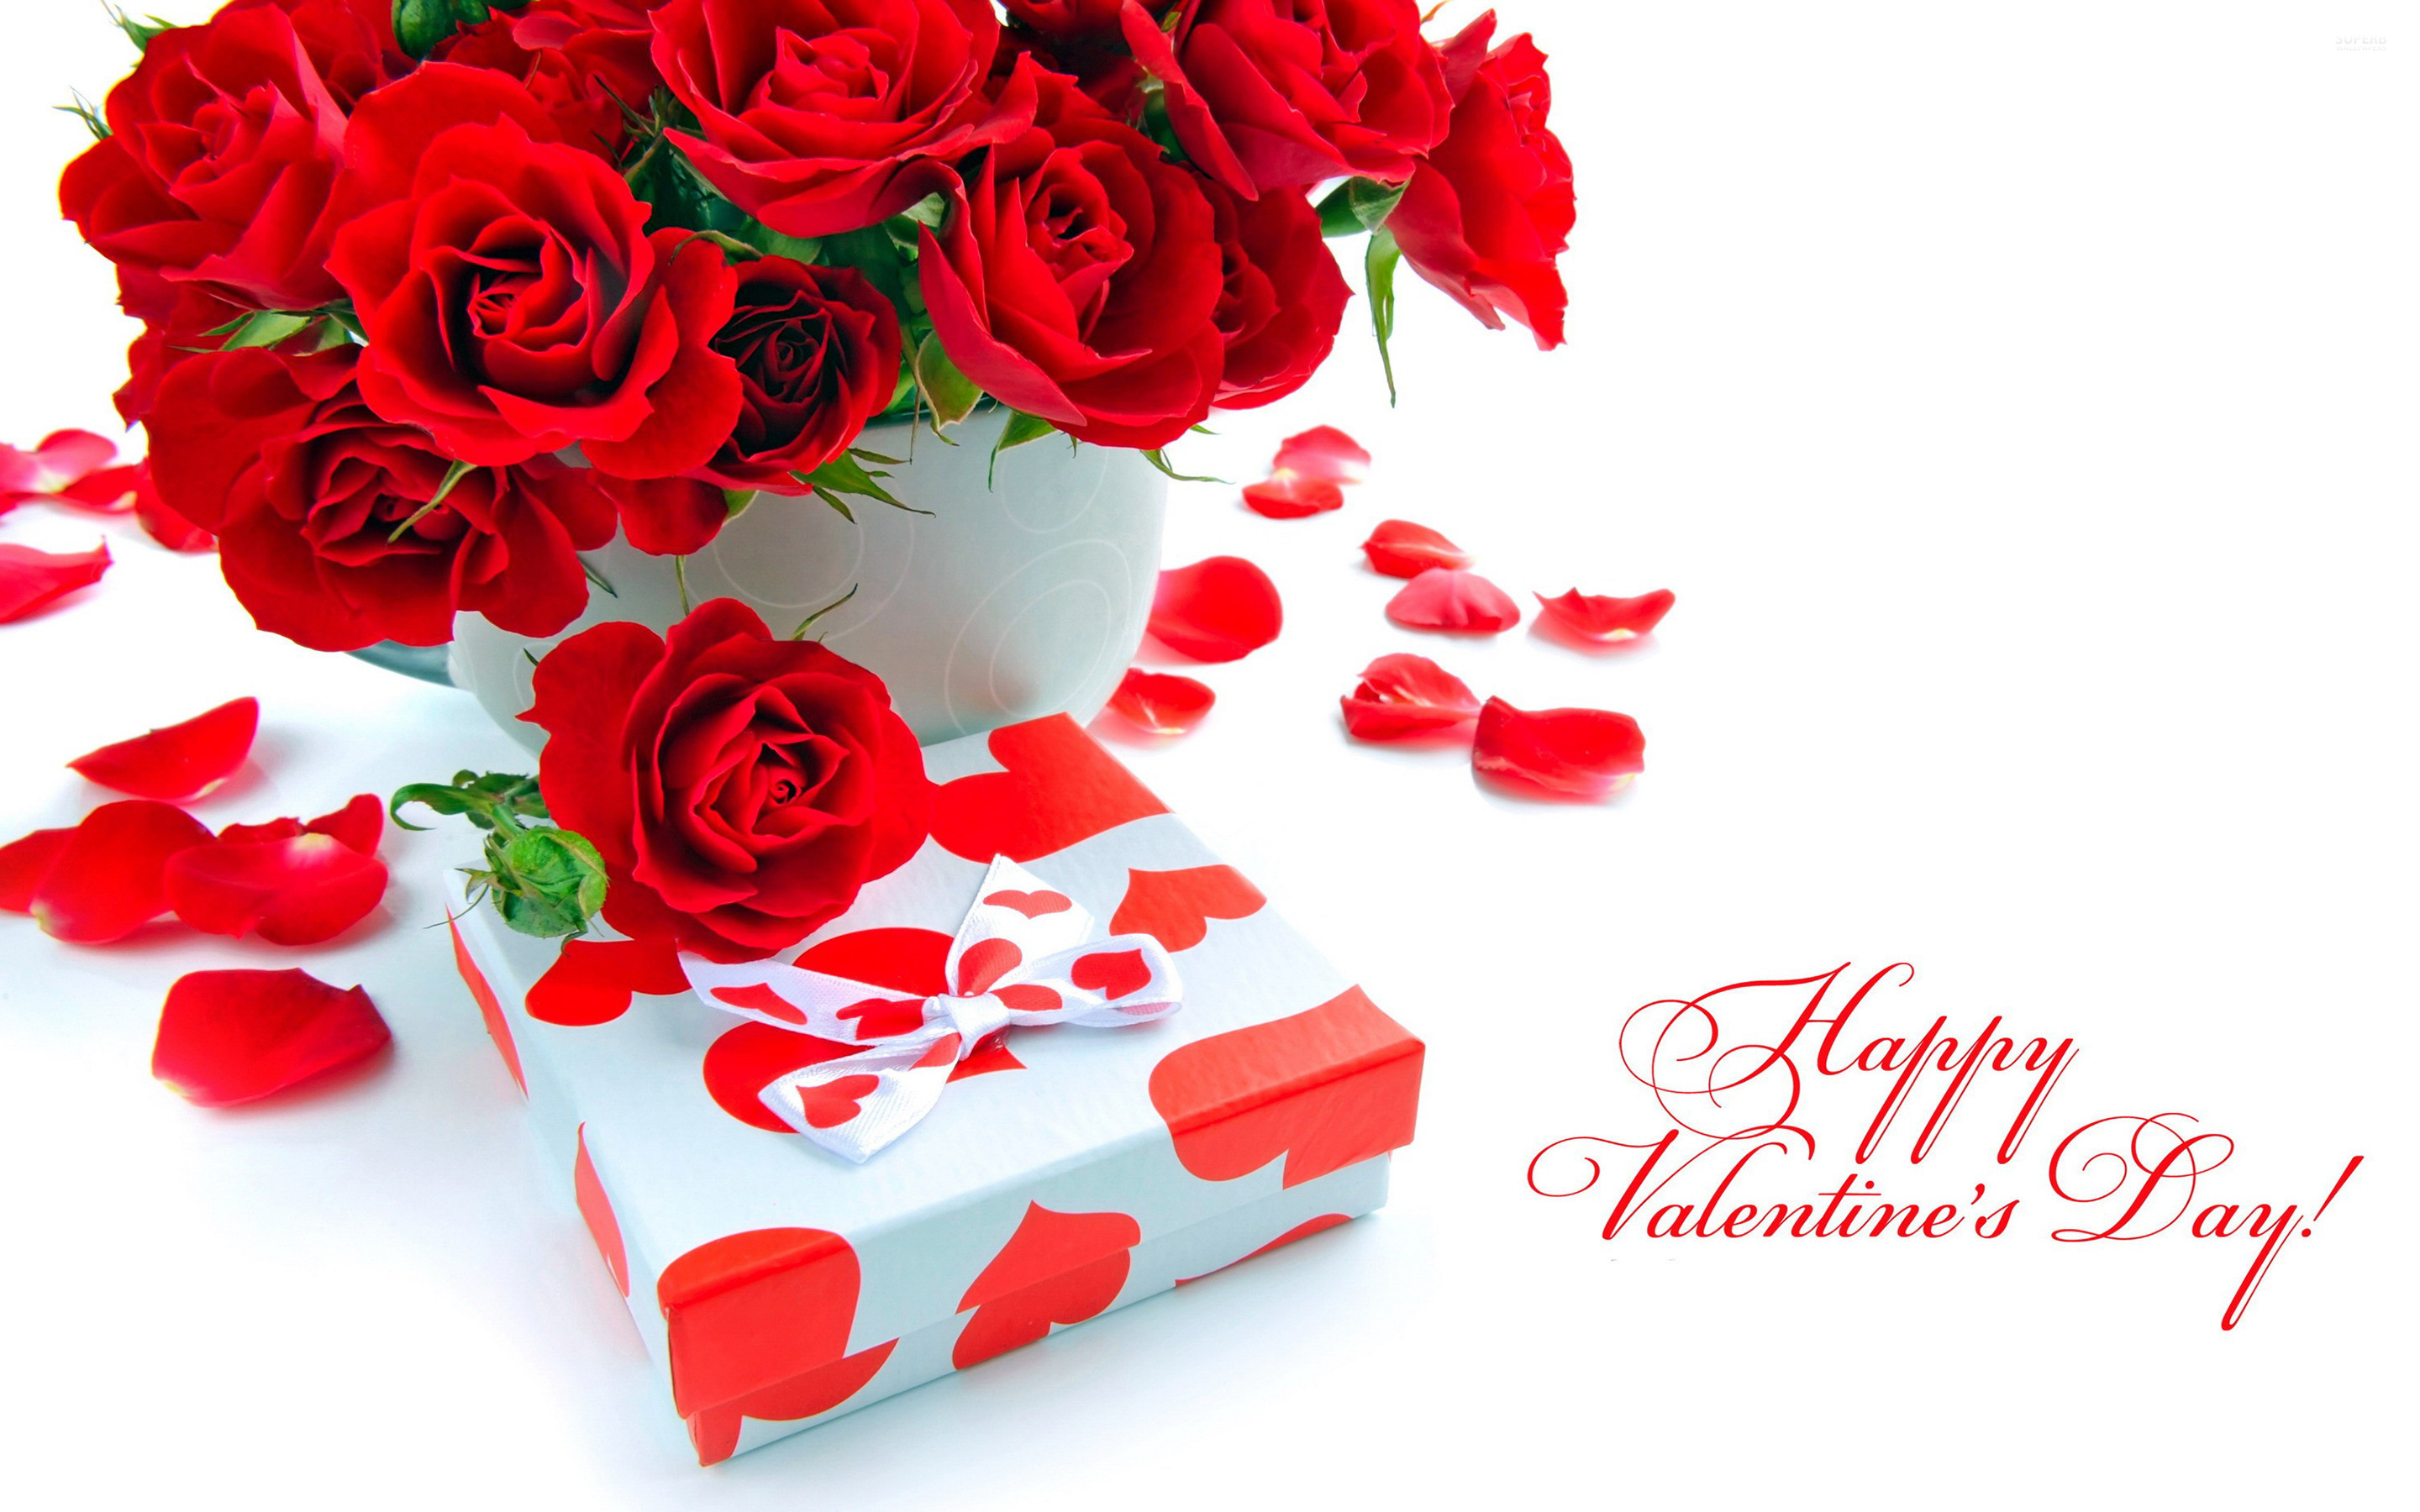 Valentines Day Image free download